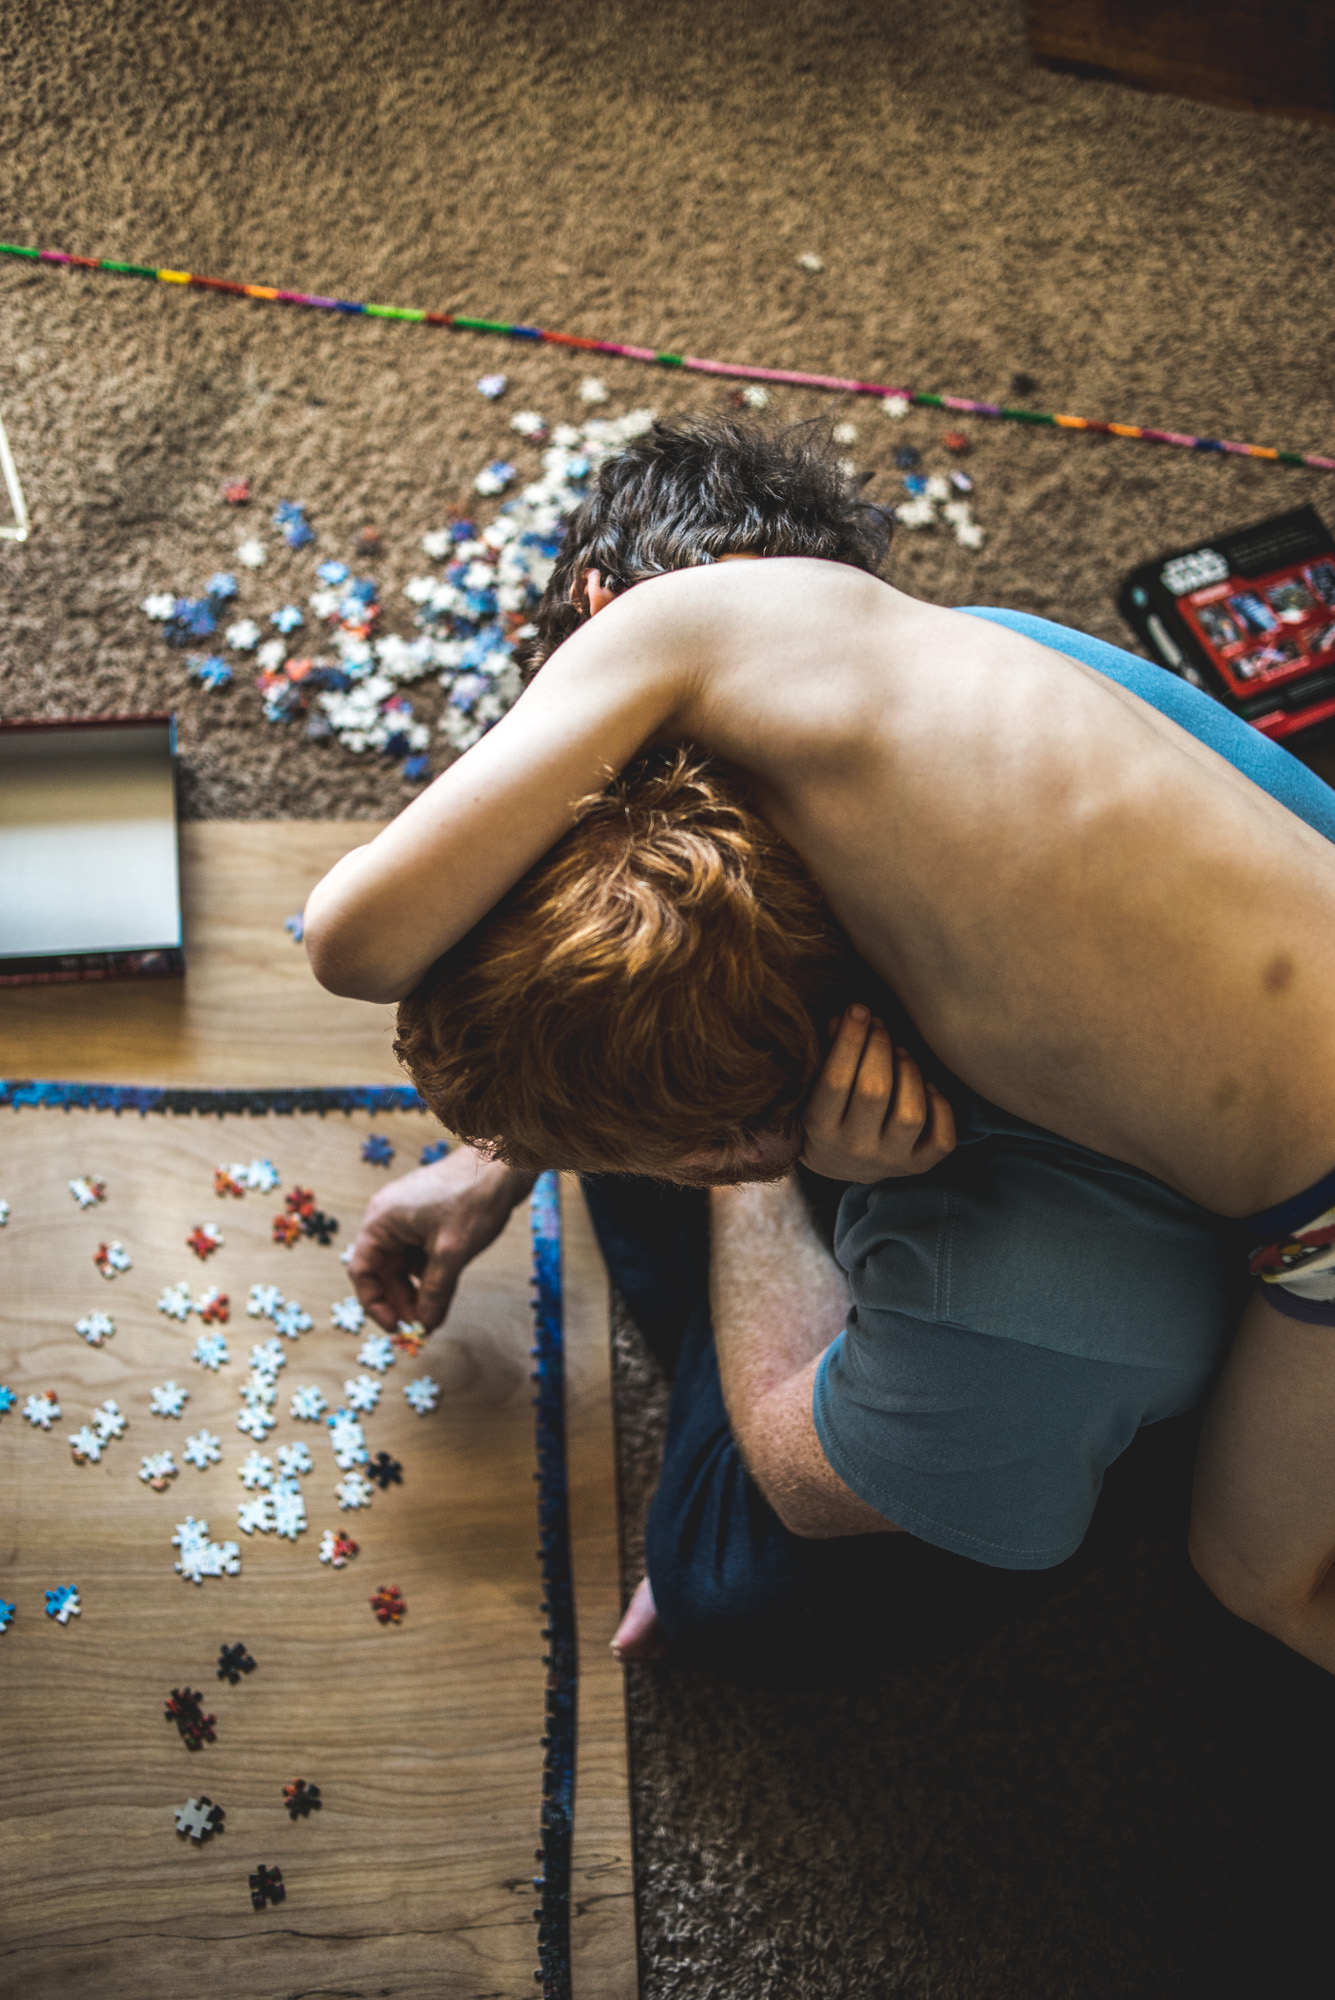 Color photo of a little boy climbing on his dad's back as his father attempts to put together a jigsaw puzzle